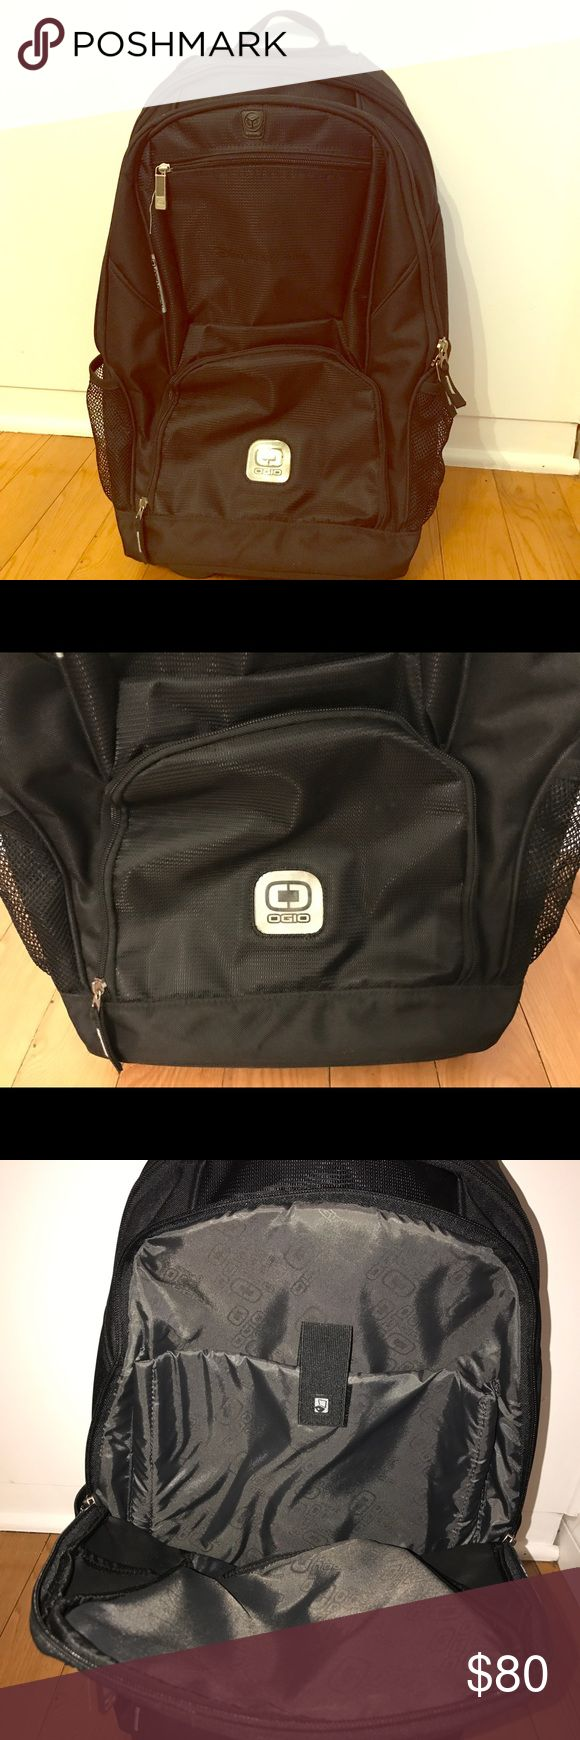 """Ogio Wheeled Phantom Travel Backpack New OGIO Wheeled backpack! Used only once! Part pack, part roller bag, the streamlined Phantom Travel Bag rolls past the competition. This bag easily holds all your necessities and then some for any activity.   Dimensions: 20.5"""" Hx 13.5"""" Wx 10.25"""" D View Specs Recommended Use: Travel OGIO Bags Backpacks"""